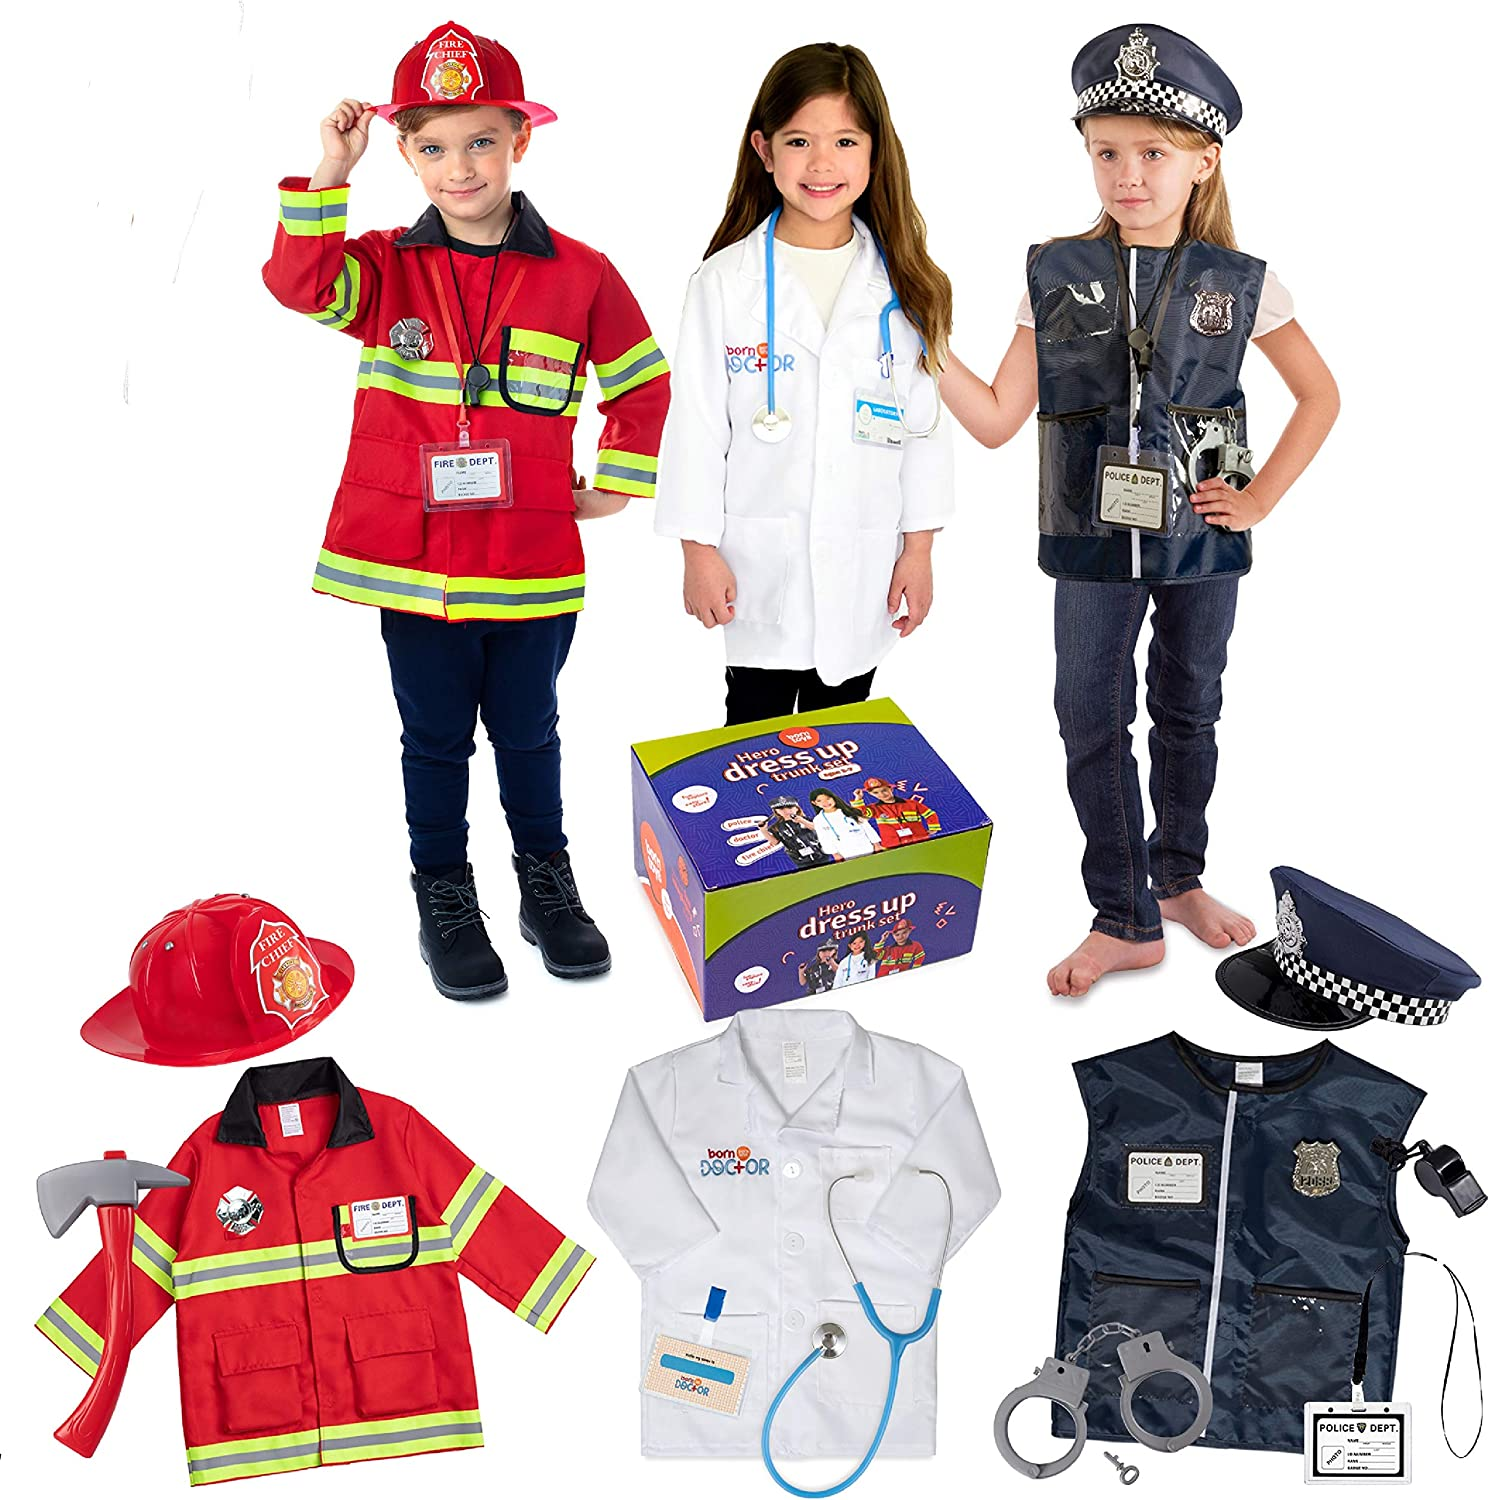 Born Toys Premium 7pcs Costume Dress up set for kids ages 7-7  fireman,police costume, and doctor all sets are washable and have  accessories